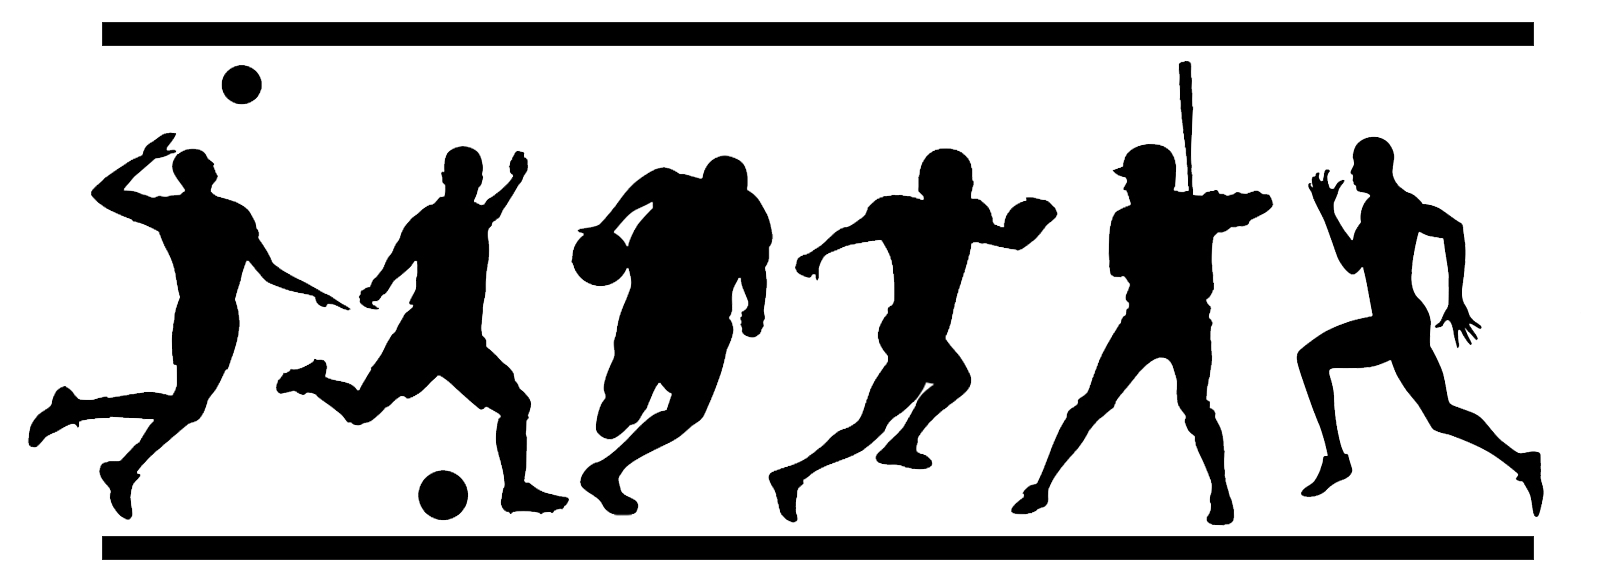 13 all sports icon png images sport ball icons icon sports management and sports balls clip